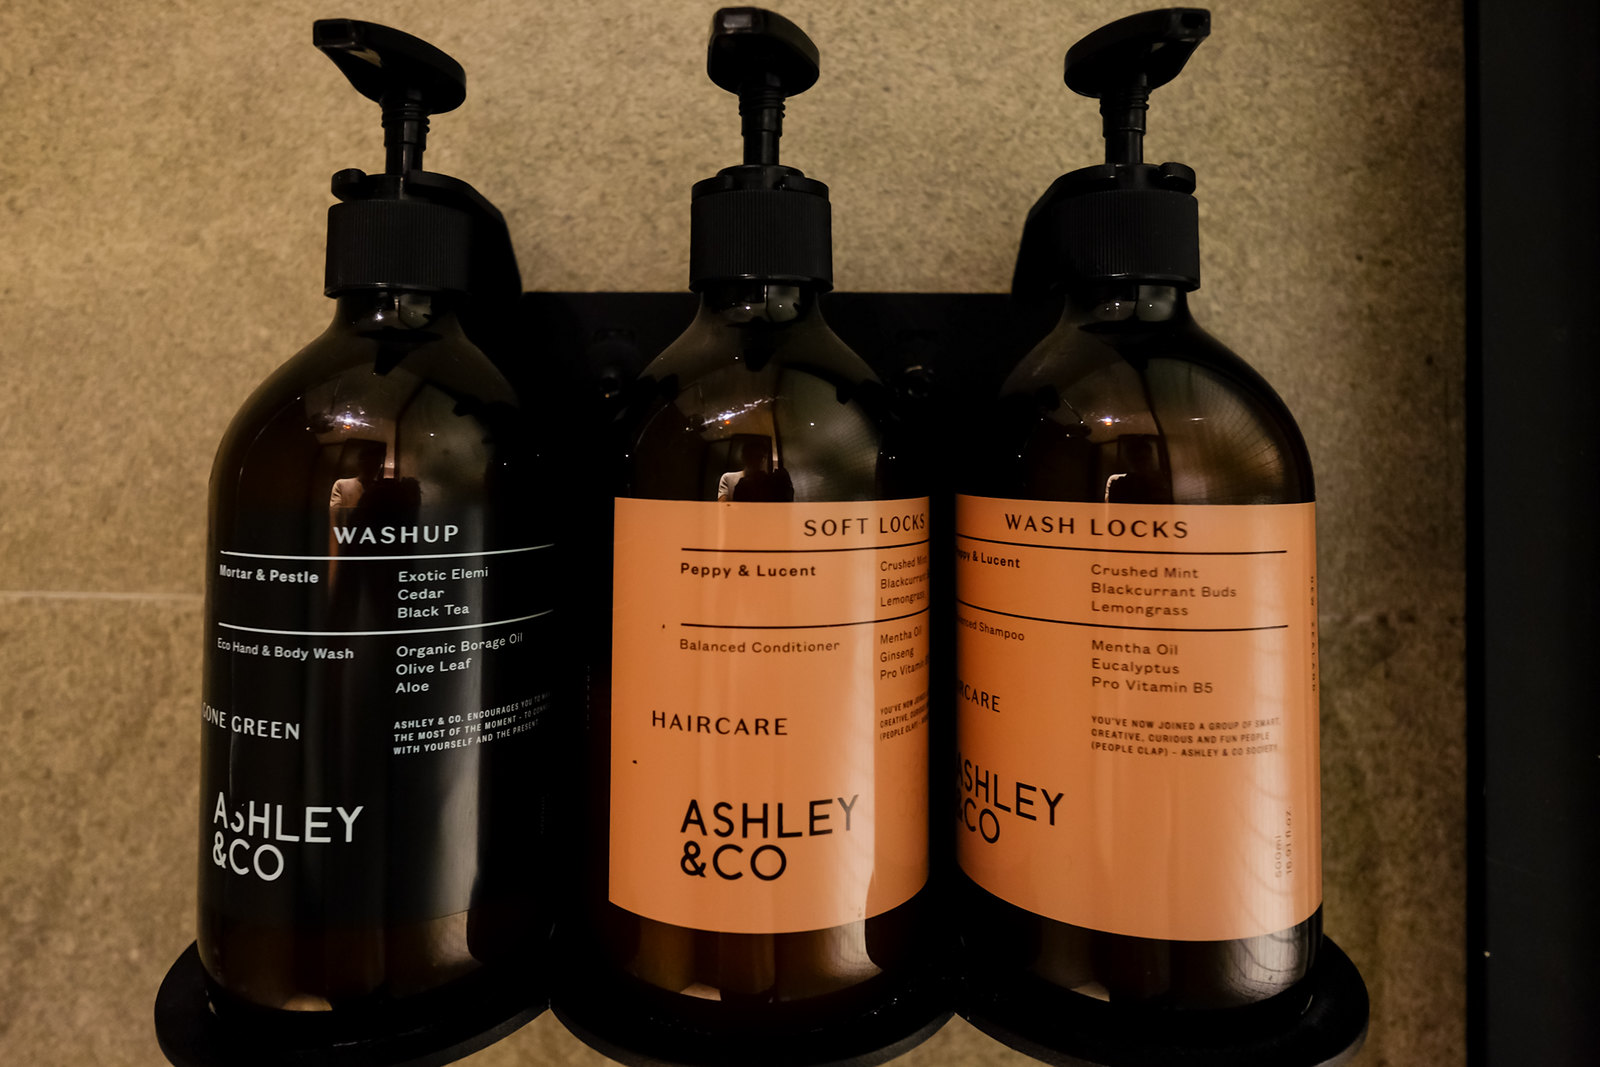 Ashley & Co. amenities